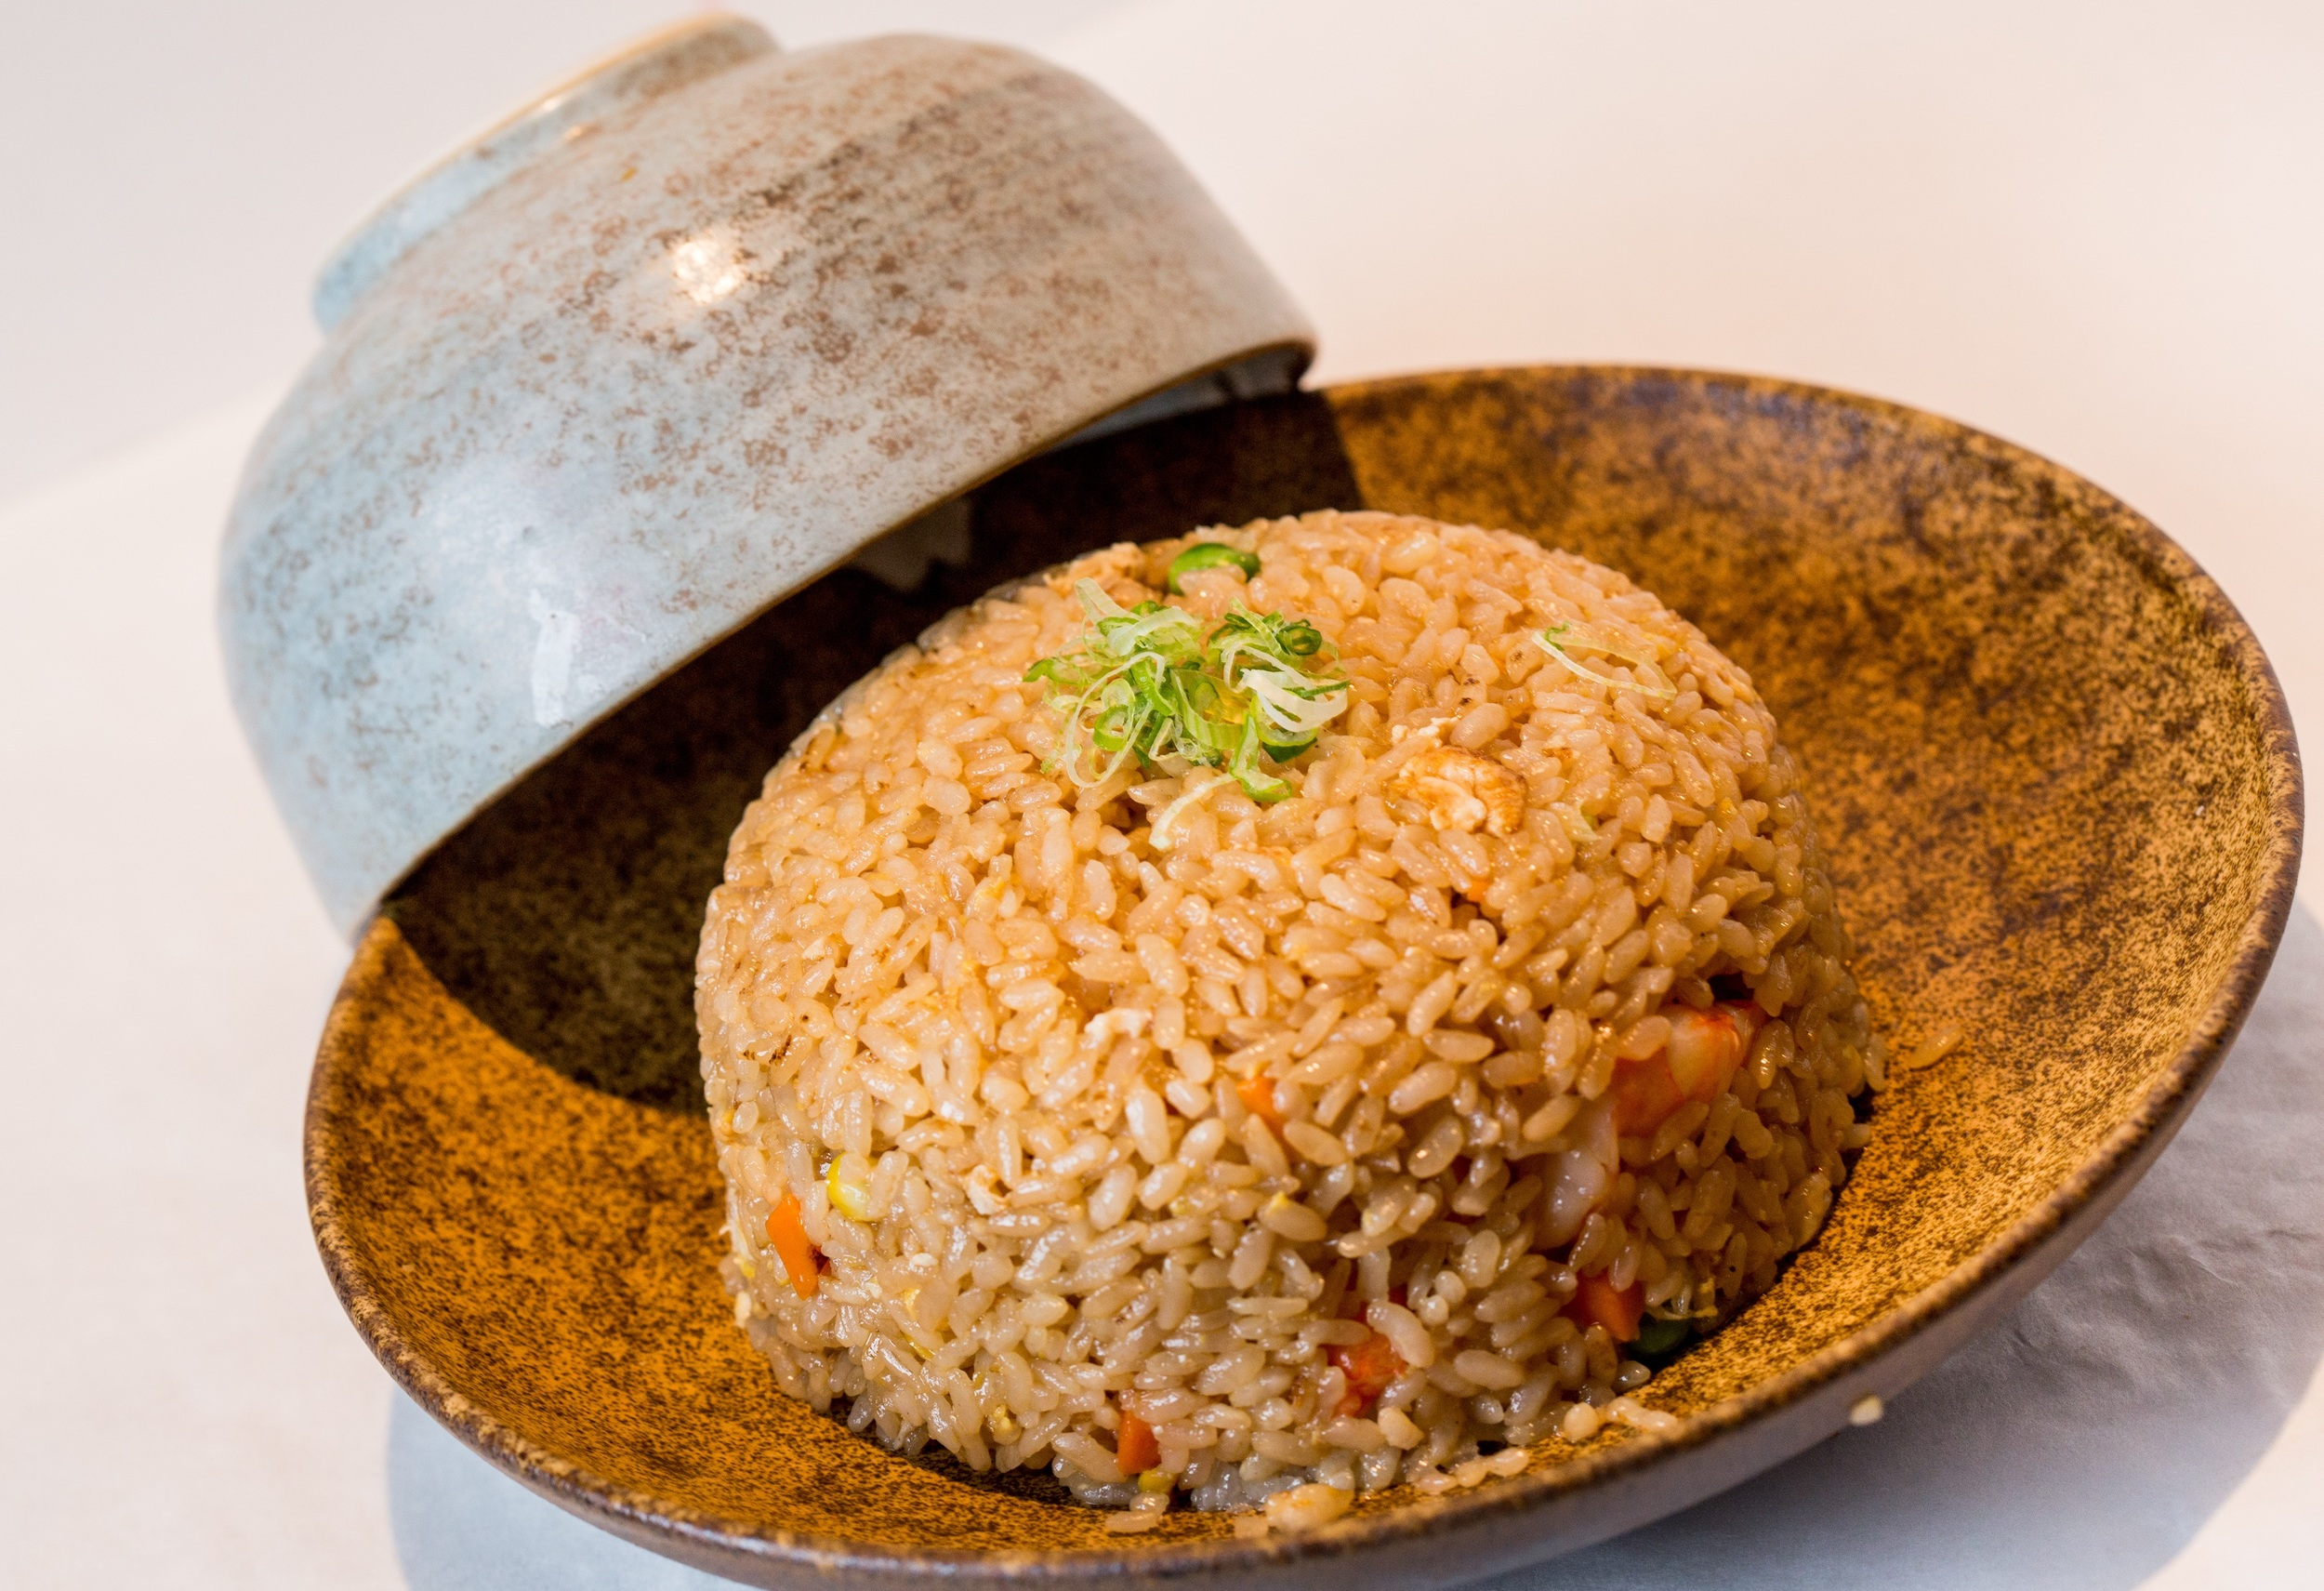 108 Shrimp Fried Rice pic 2.jpg